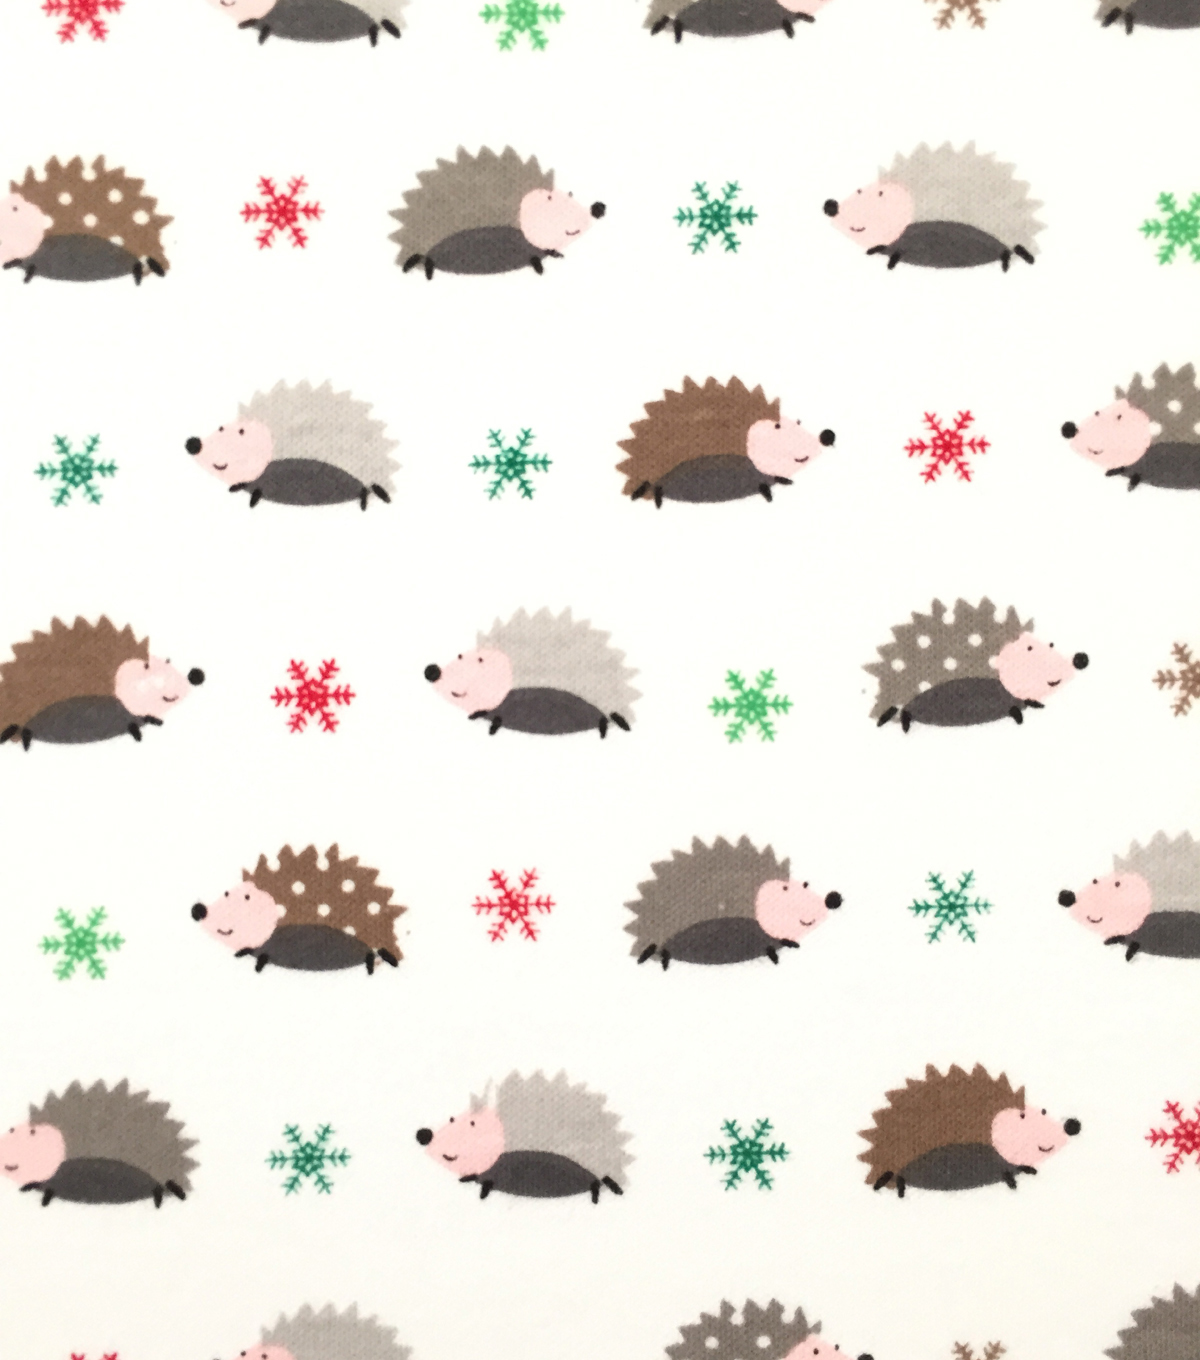 Doodles Christmas Interlock Cotton Fabric -Presents